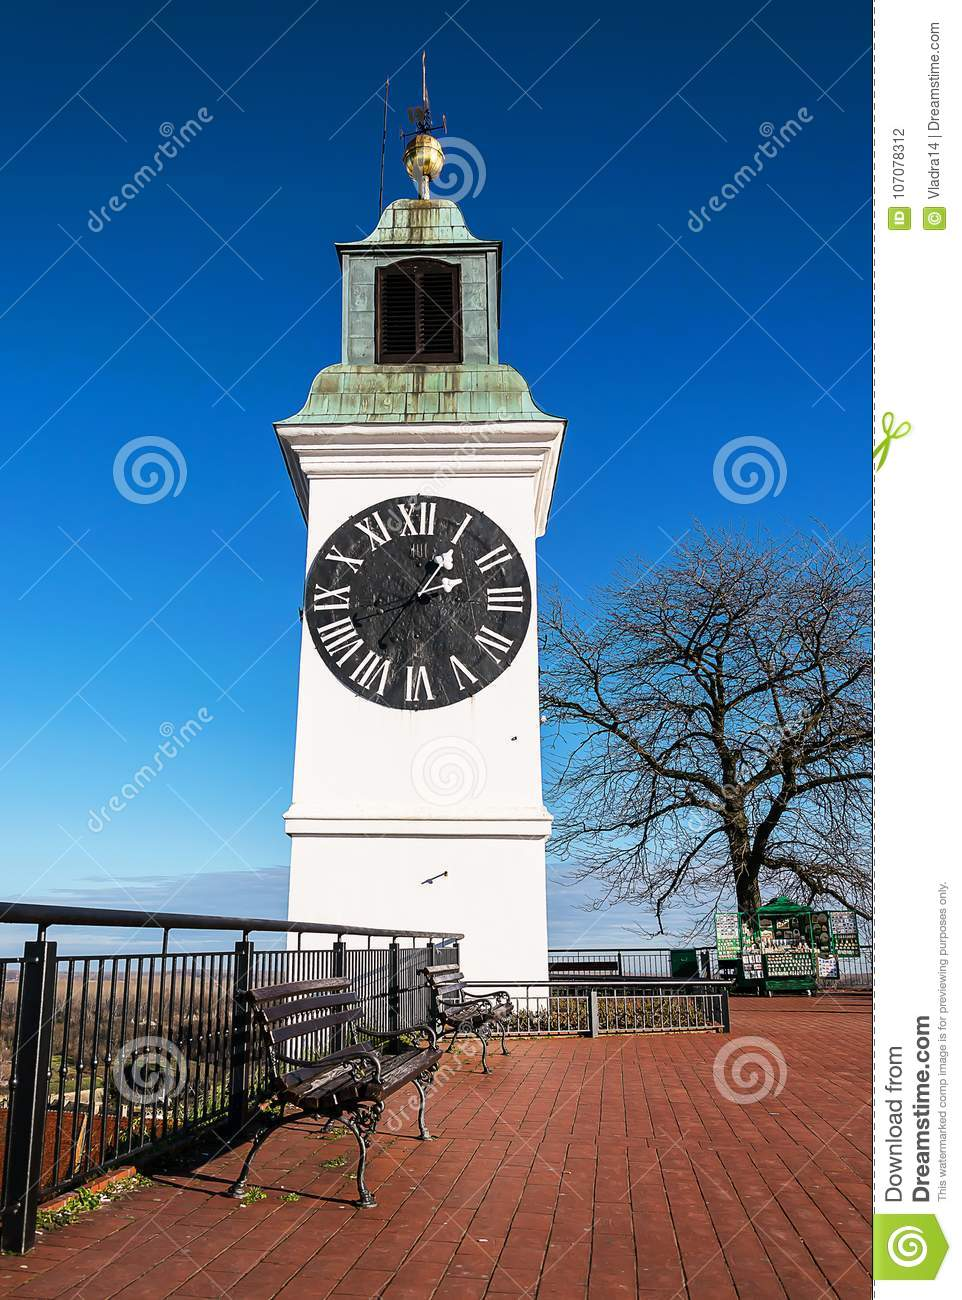 Clock Tower on the Petrovaradin fortress